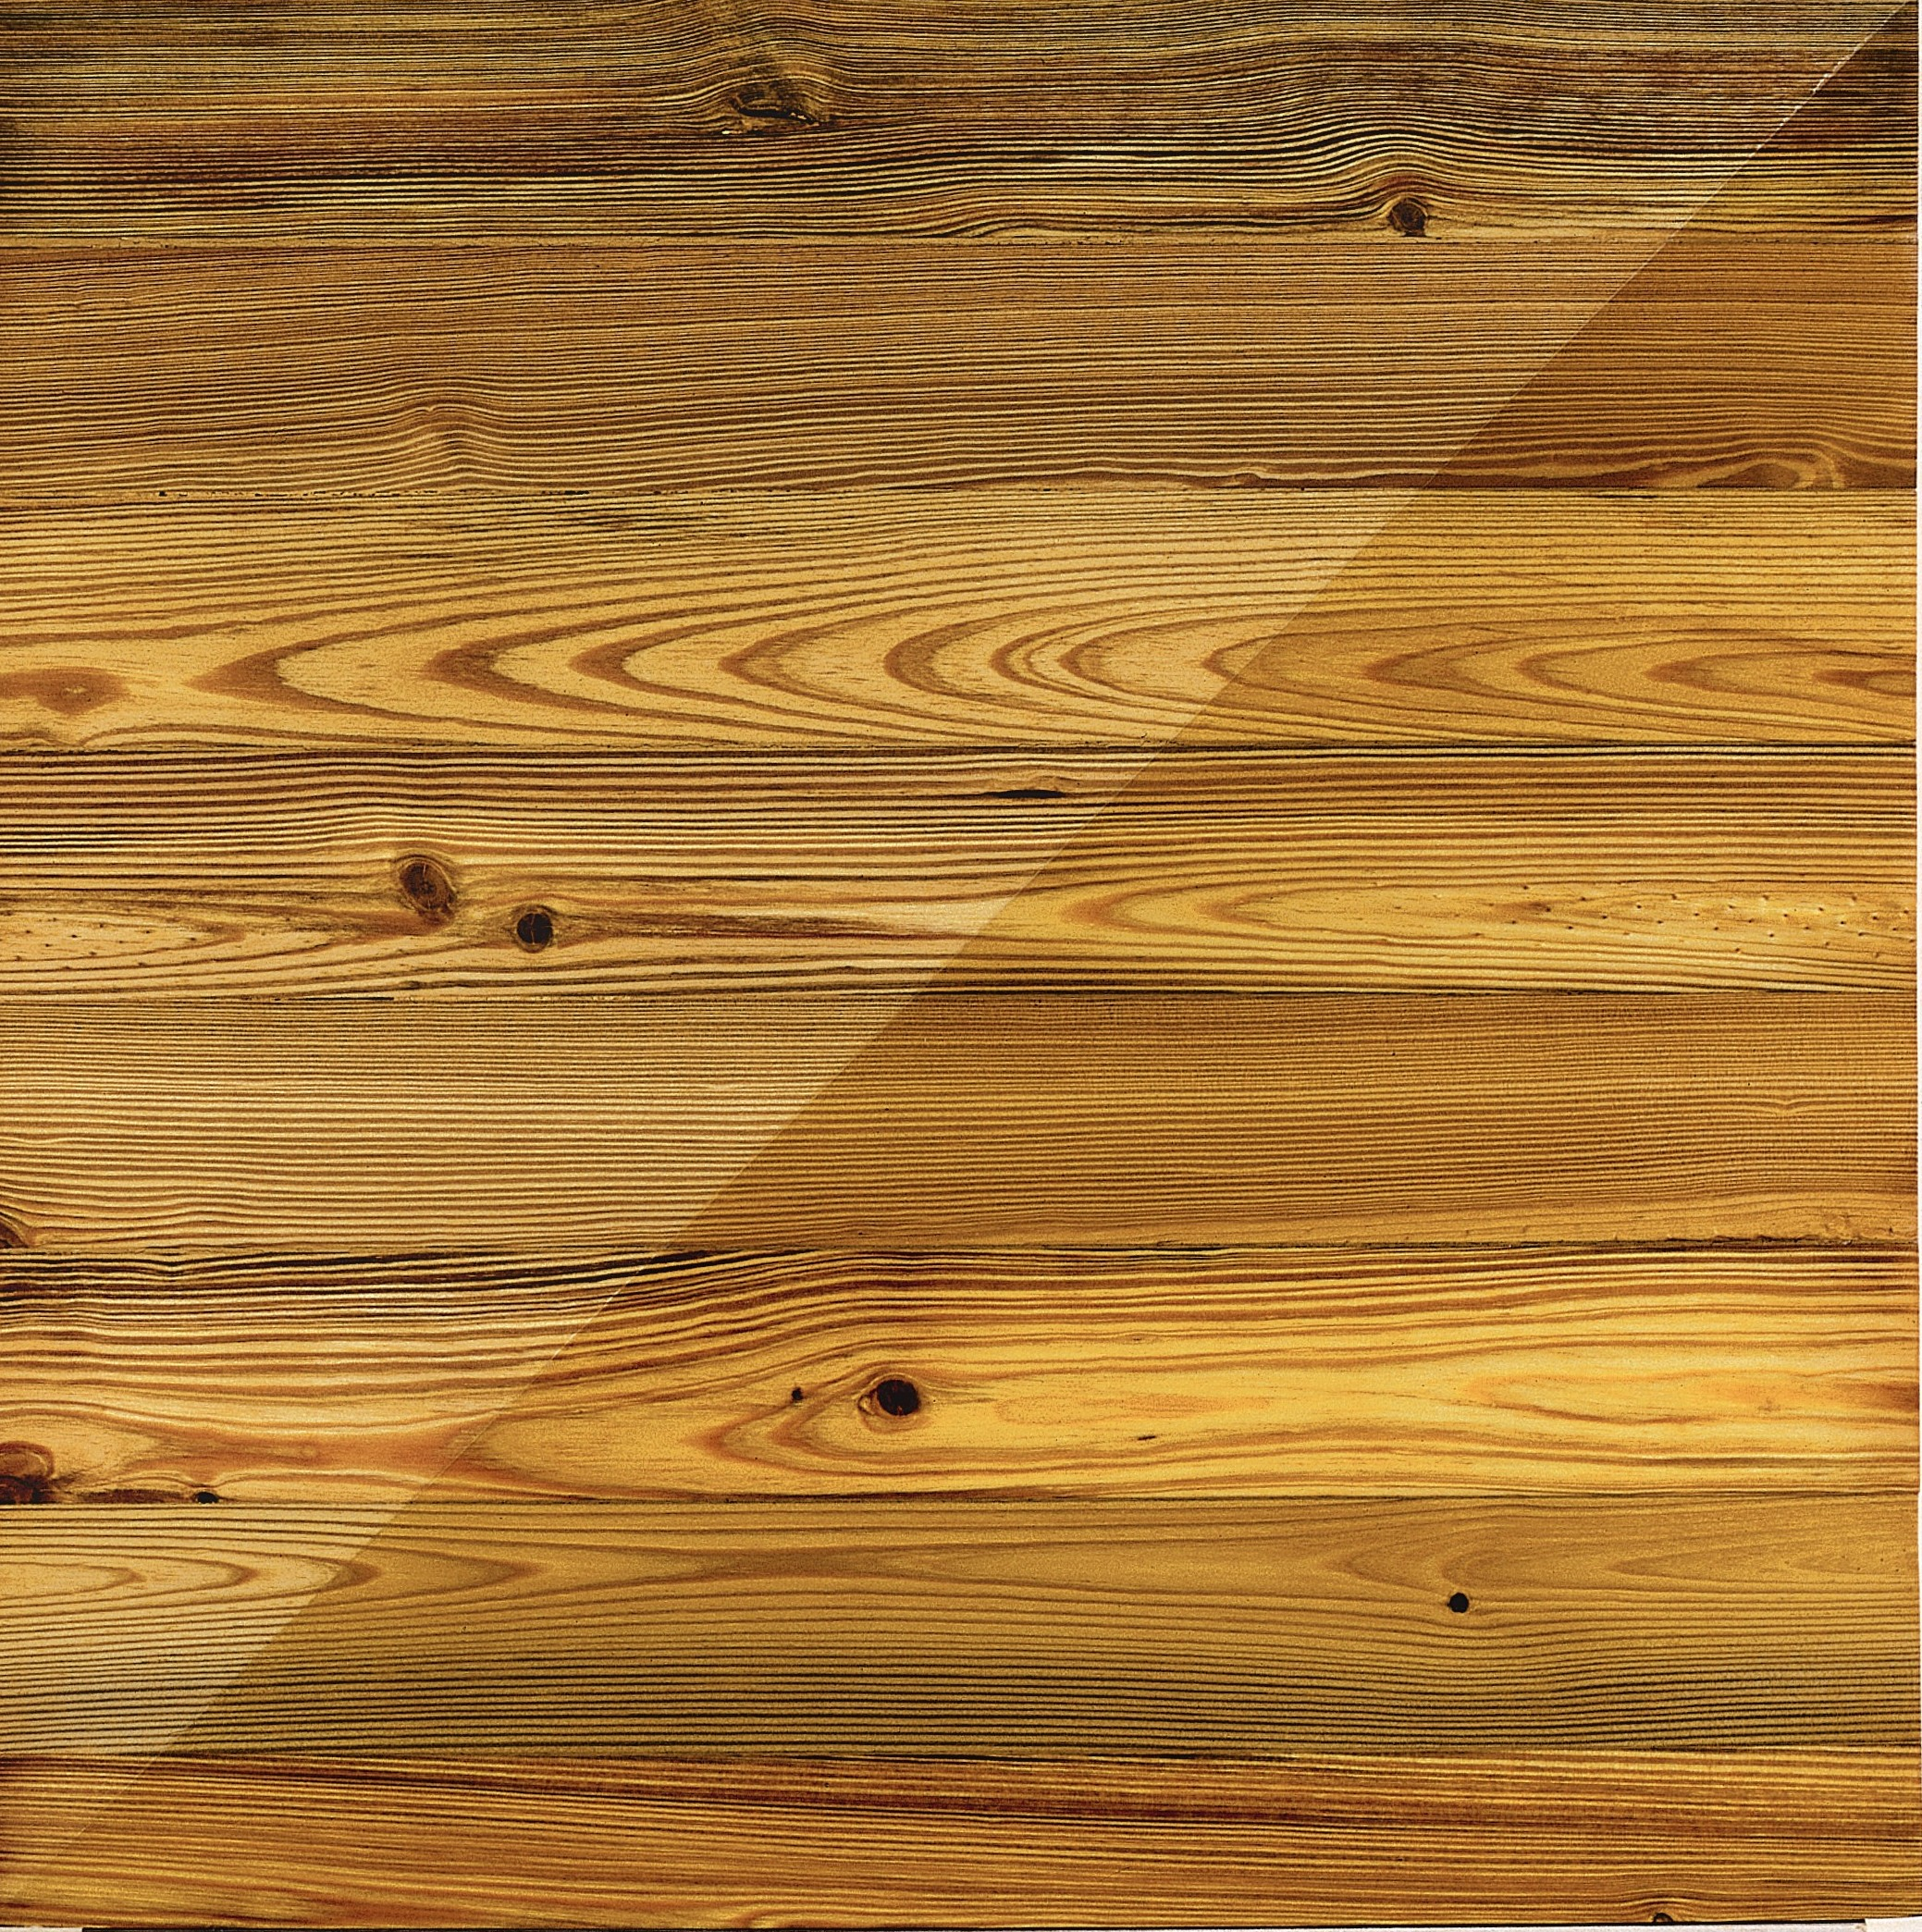 ALL FLOORING    |    reclaimed wood flooring    |    SOLID WOOD PRE-FINISHED    |    ENGINEERED WOOD FLOORING